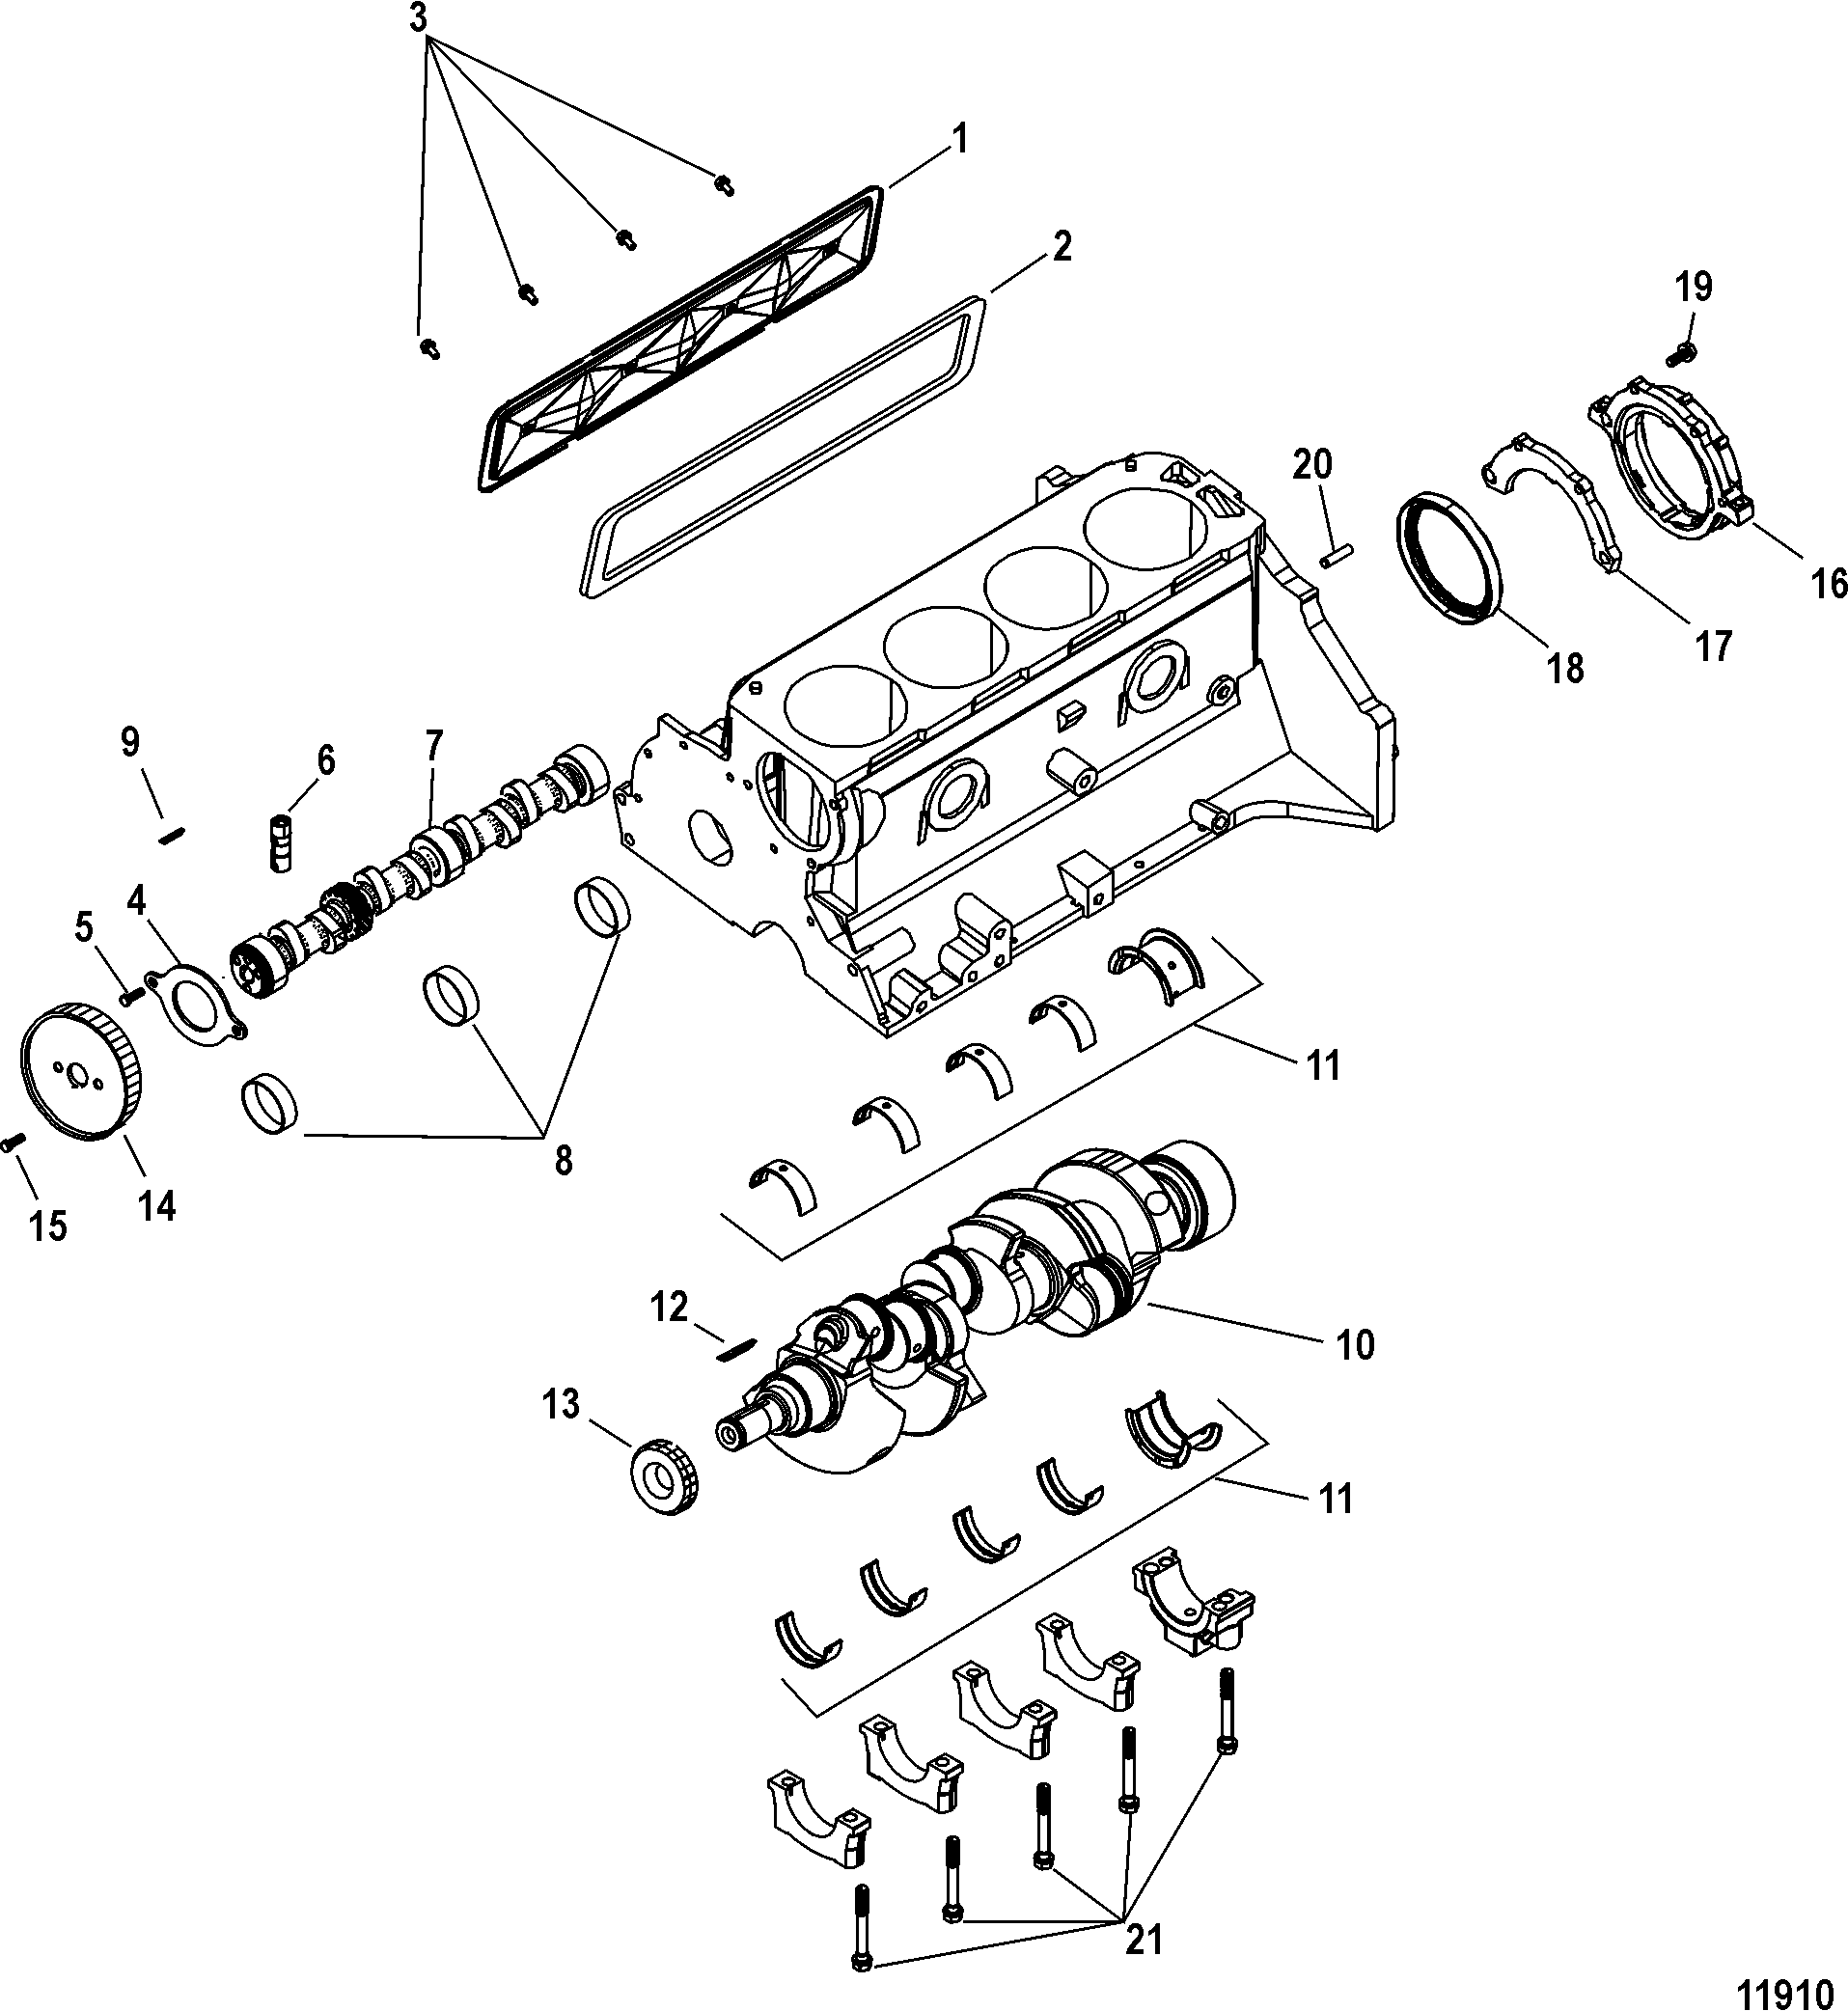 Cylinder Block, Crankshaft and Camshaft FOR MERCRUISER 3